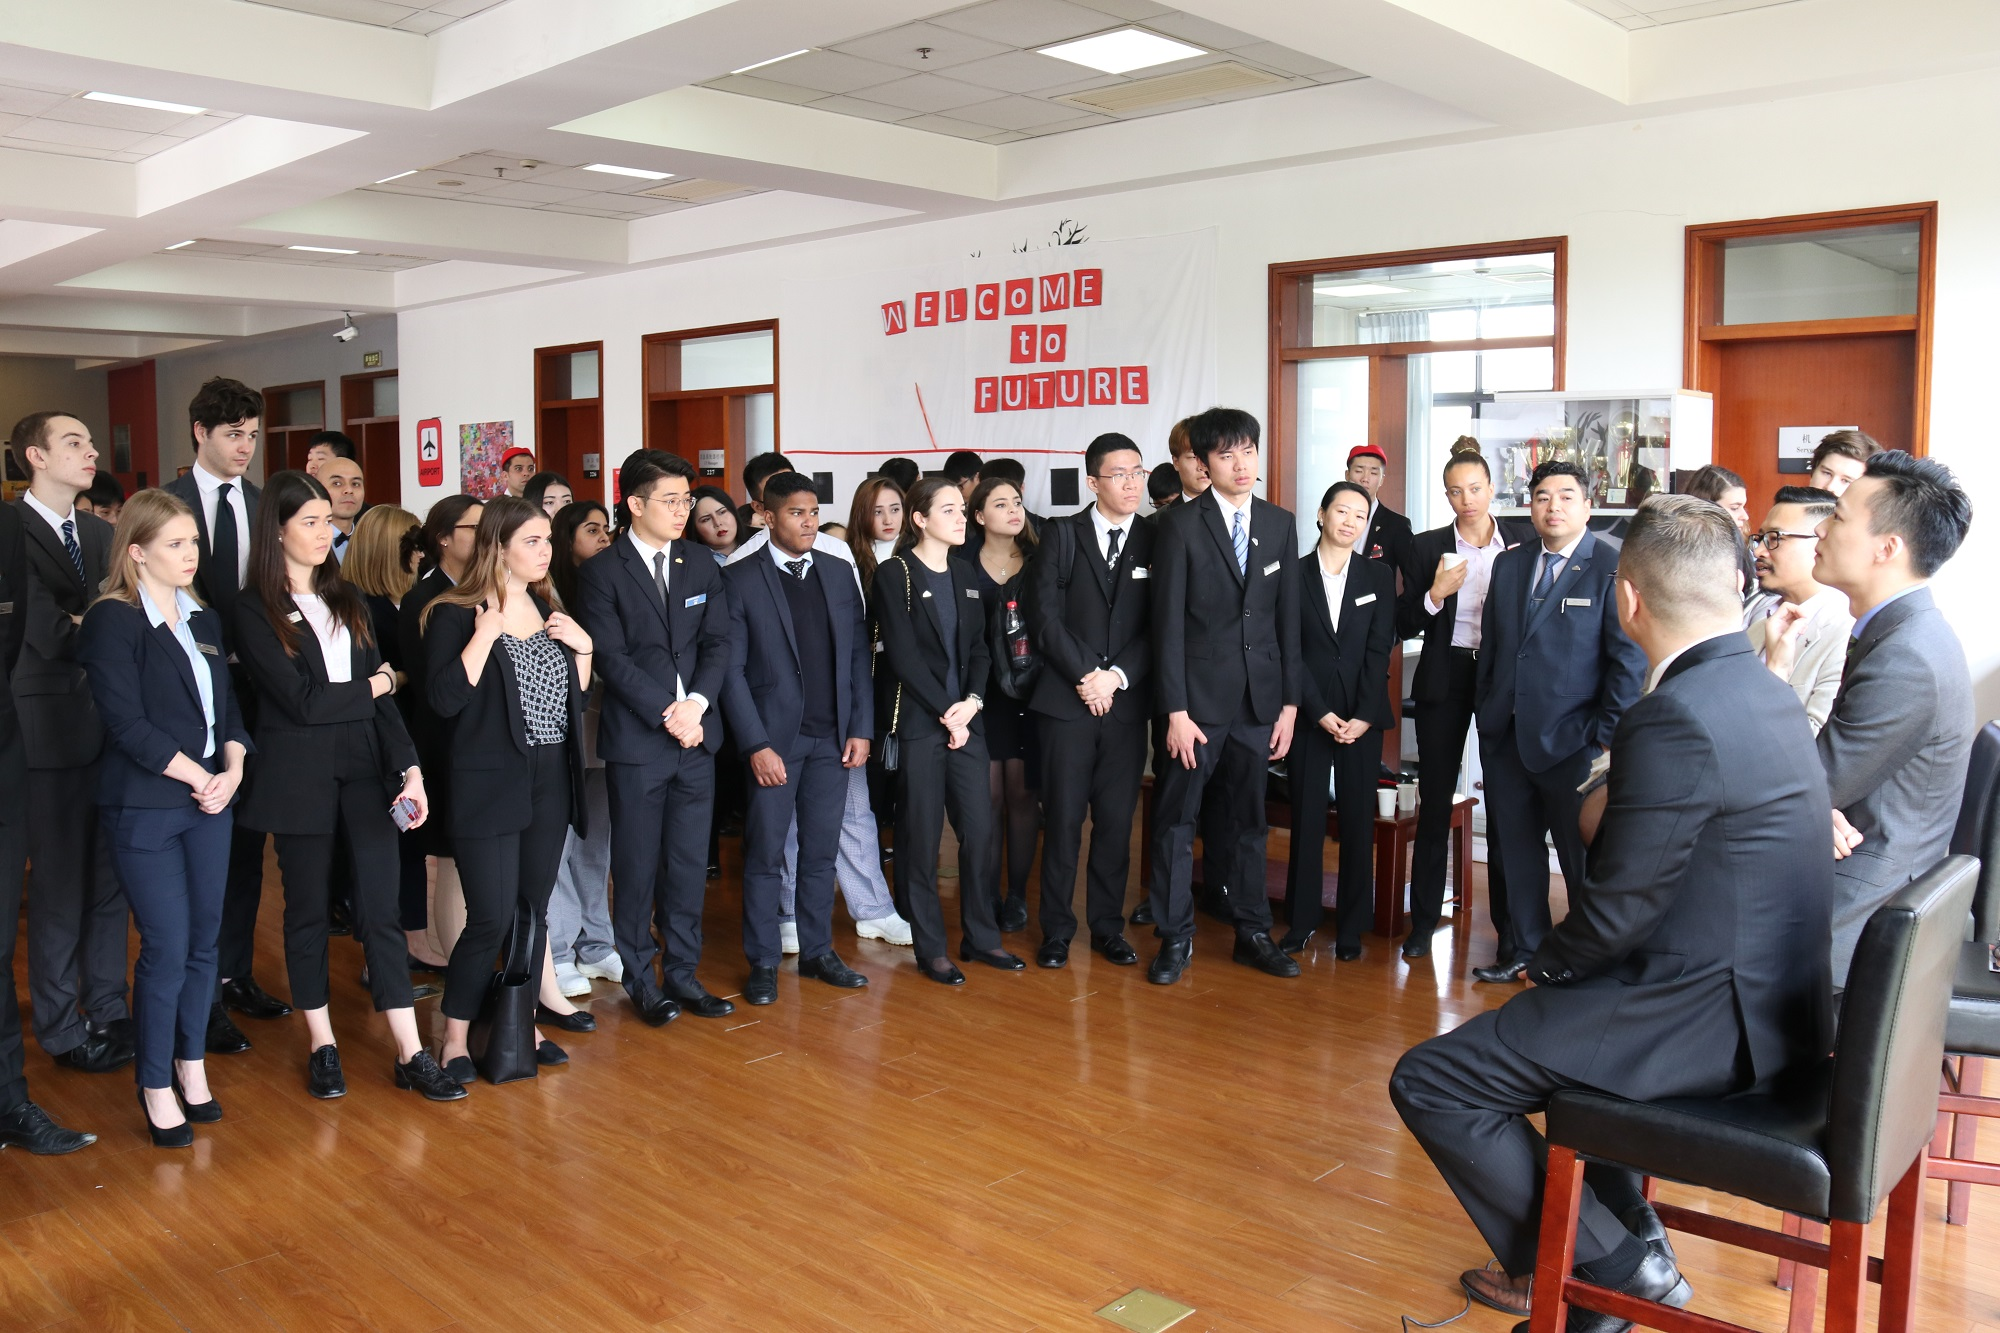 LRJJ Student-led Hospitality Event Successfully Held